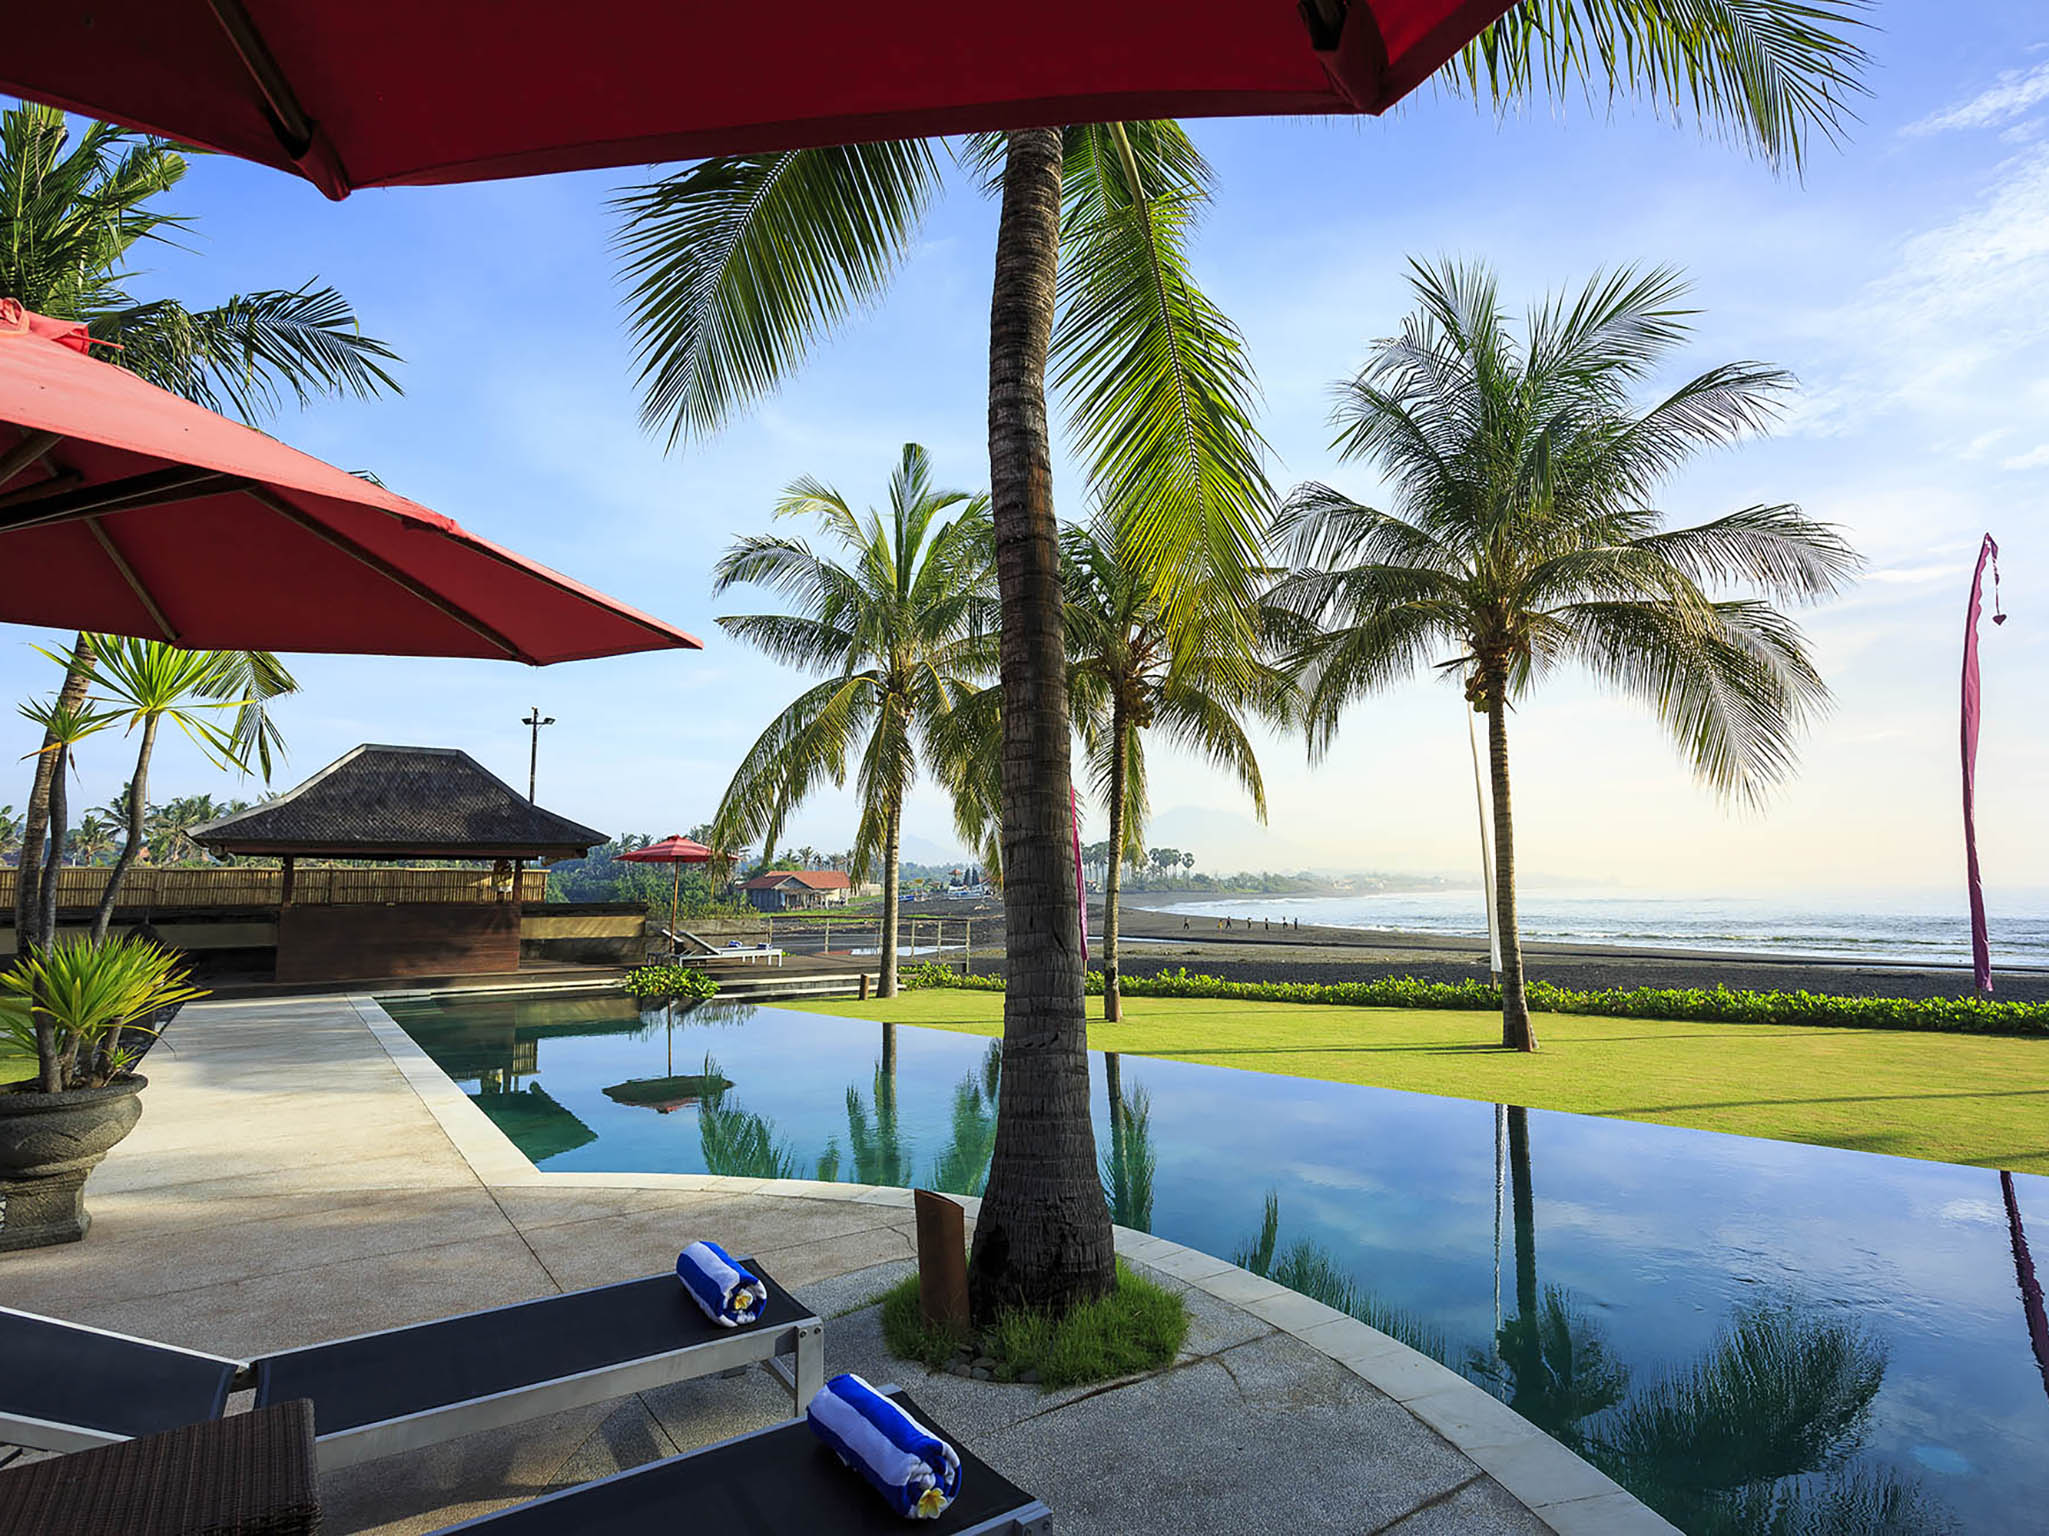 Villa Pushpapuri - Beachfront luxury - Villa Pushpapuri, Sanur-Ketewel, Bali